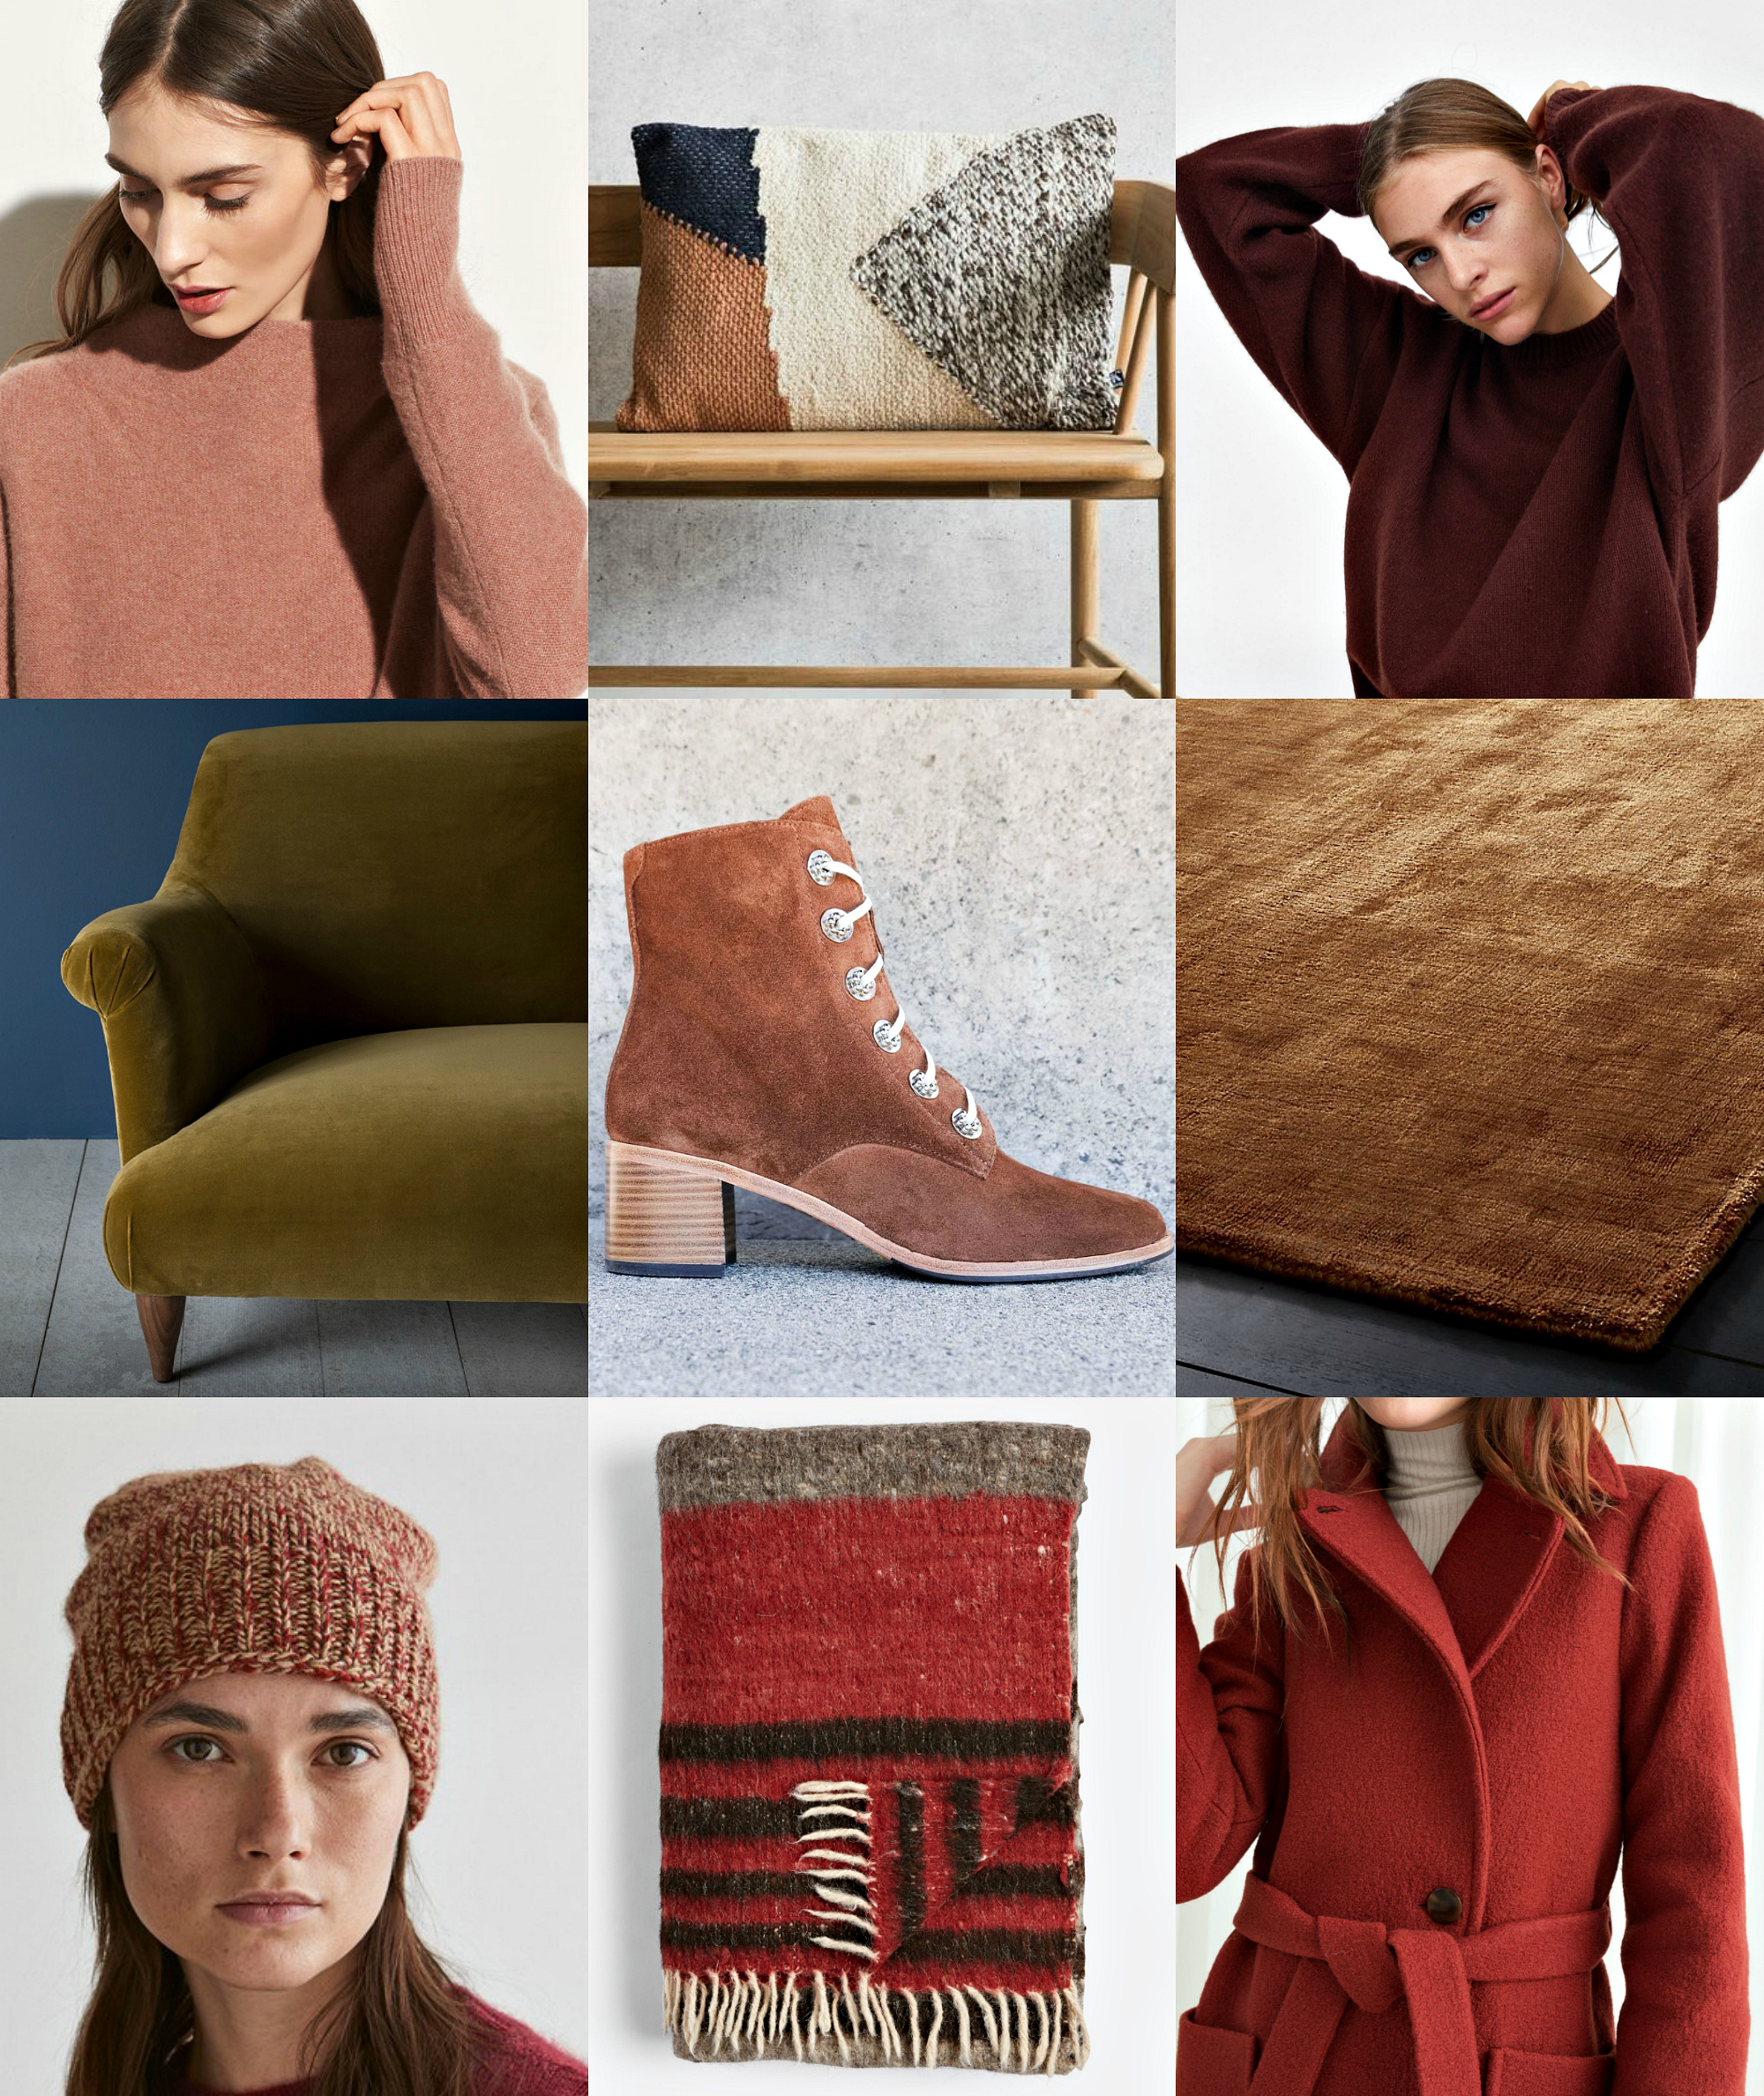 vince funnel neck cashmere sweater ,  rose & gray knotted autumn cushion ,  zara wool sweater ,  pinch goddard sofa ,  freda salvador ace lace up boot ,  cb2 posh camel rug ,  toast camel wool marl hat ,  rejuvenation napped wool throw ,  & other stories belted wool coat